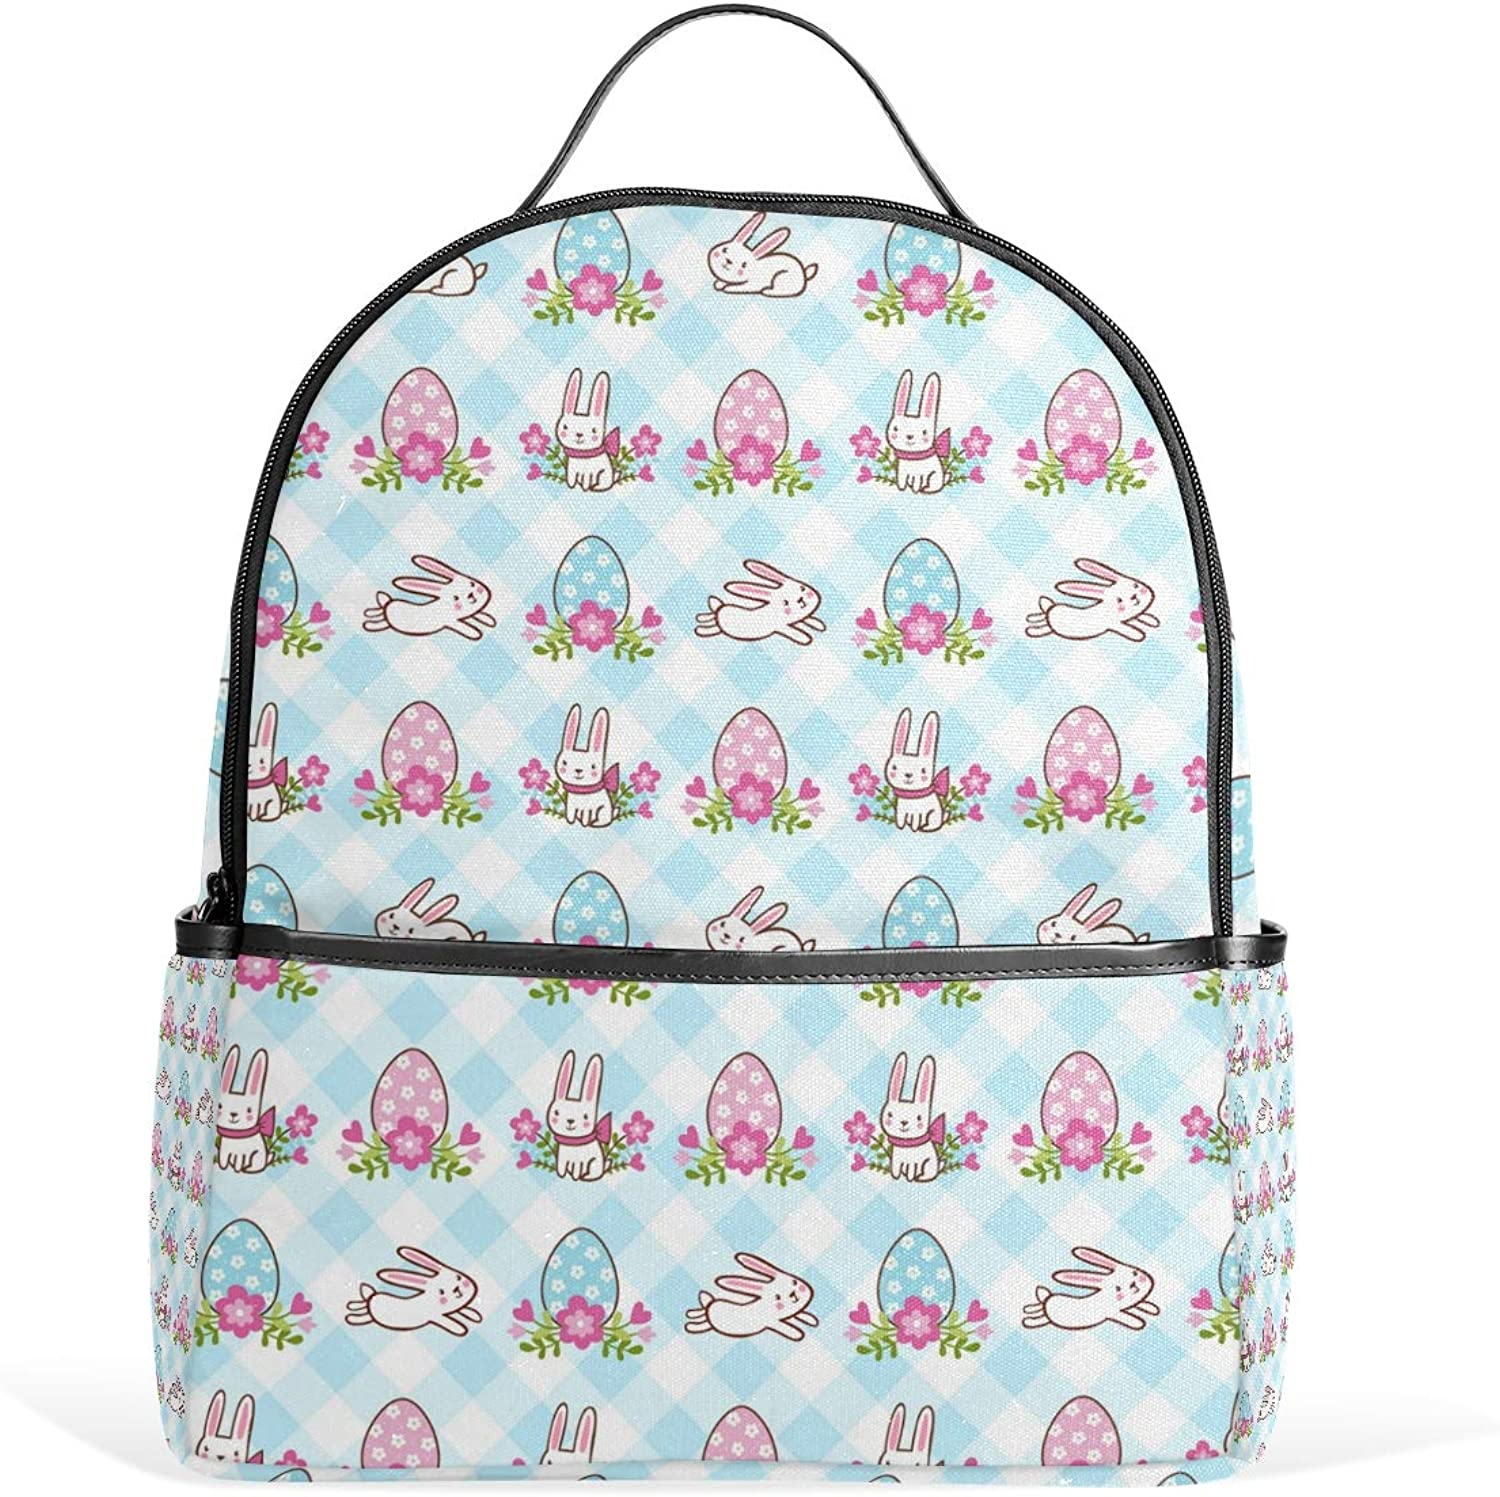 c57030d0a Fashion Backpack Easter White Bunnies and Eggs blueee Small Satchels  Daypacks Travel Shoulder Bag Rucksack for